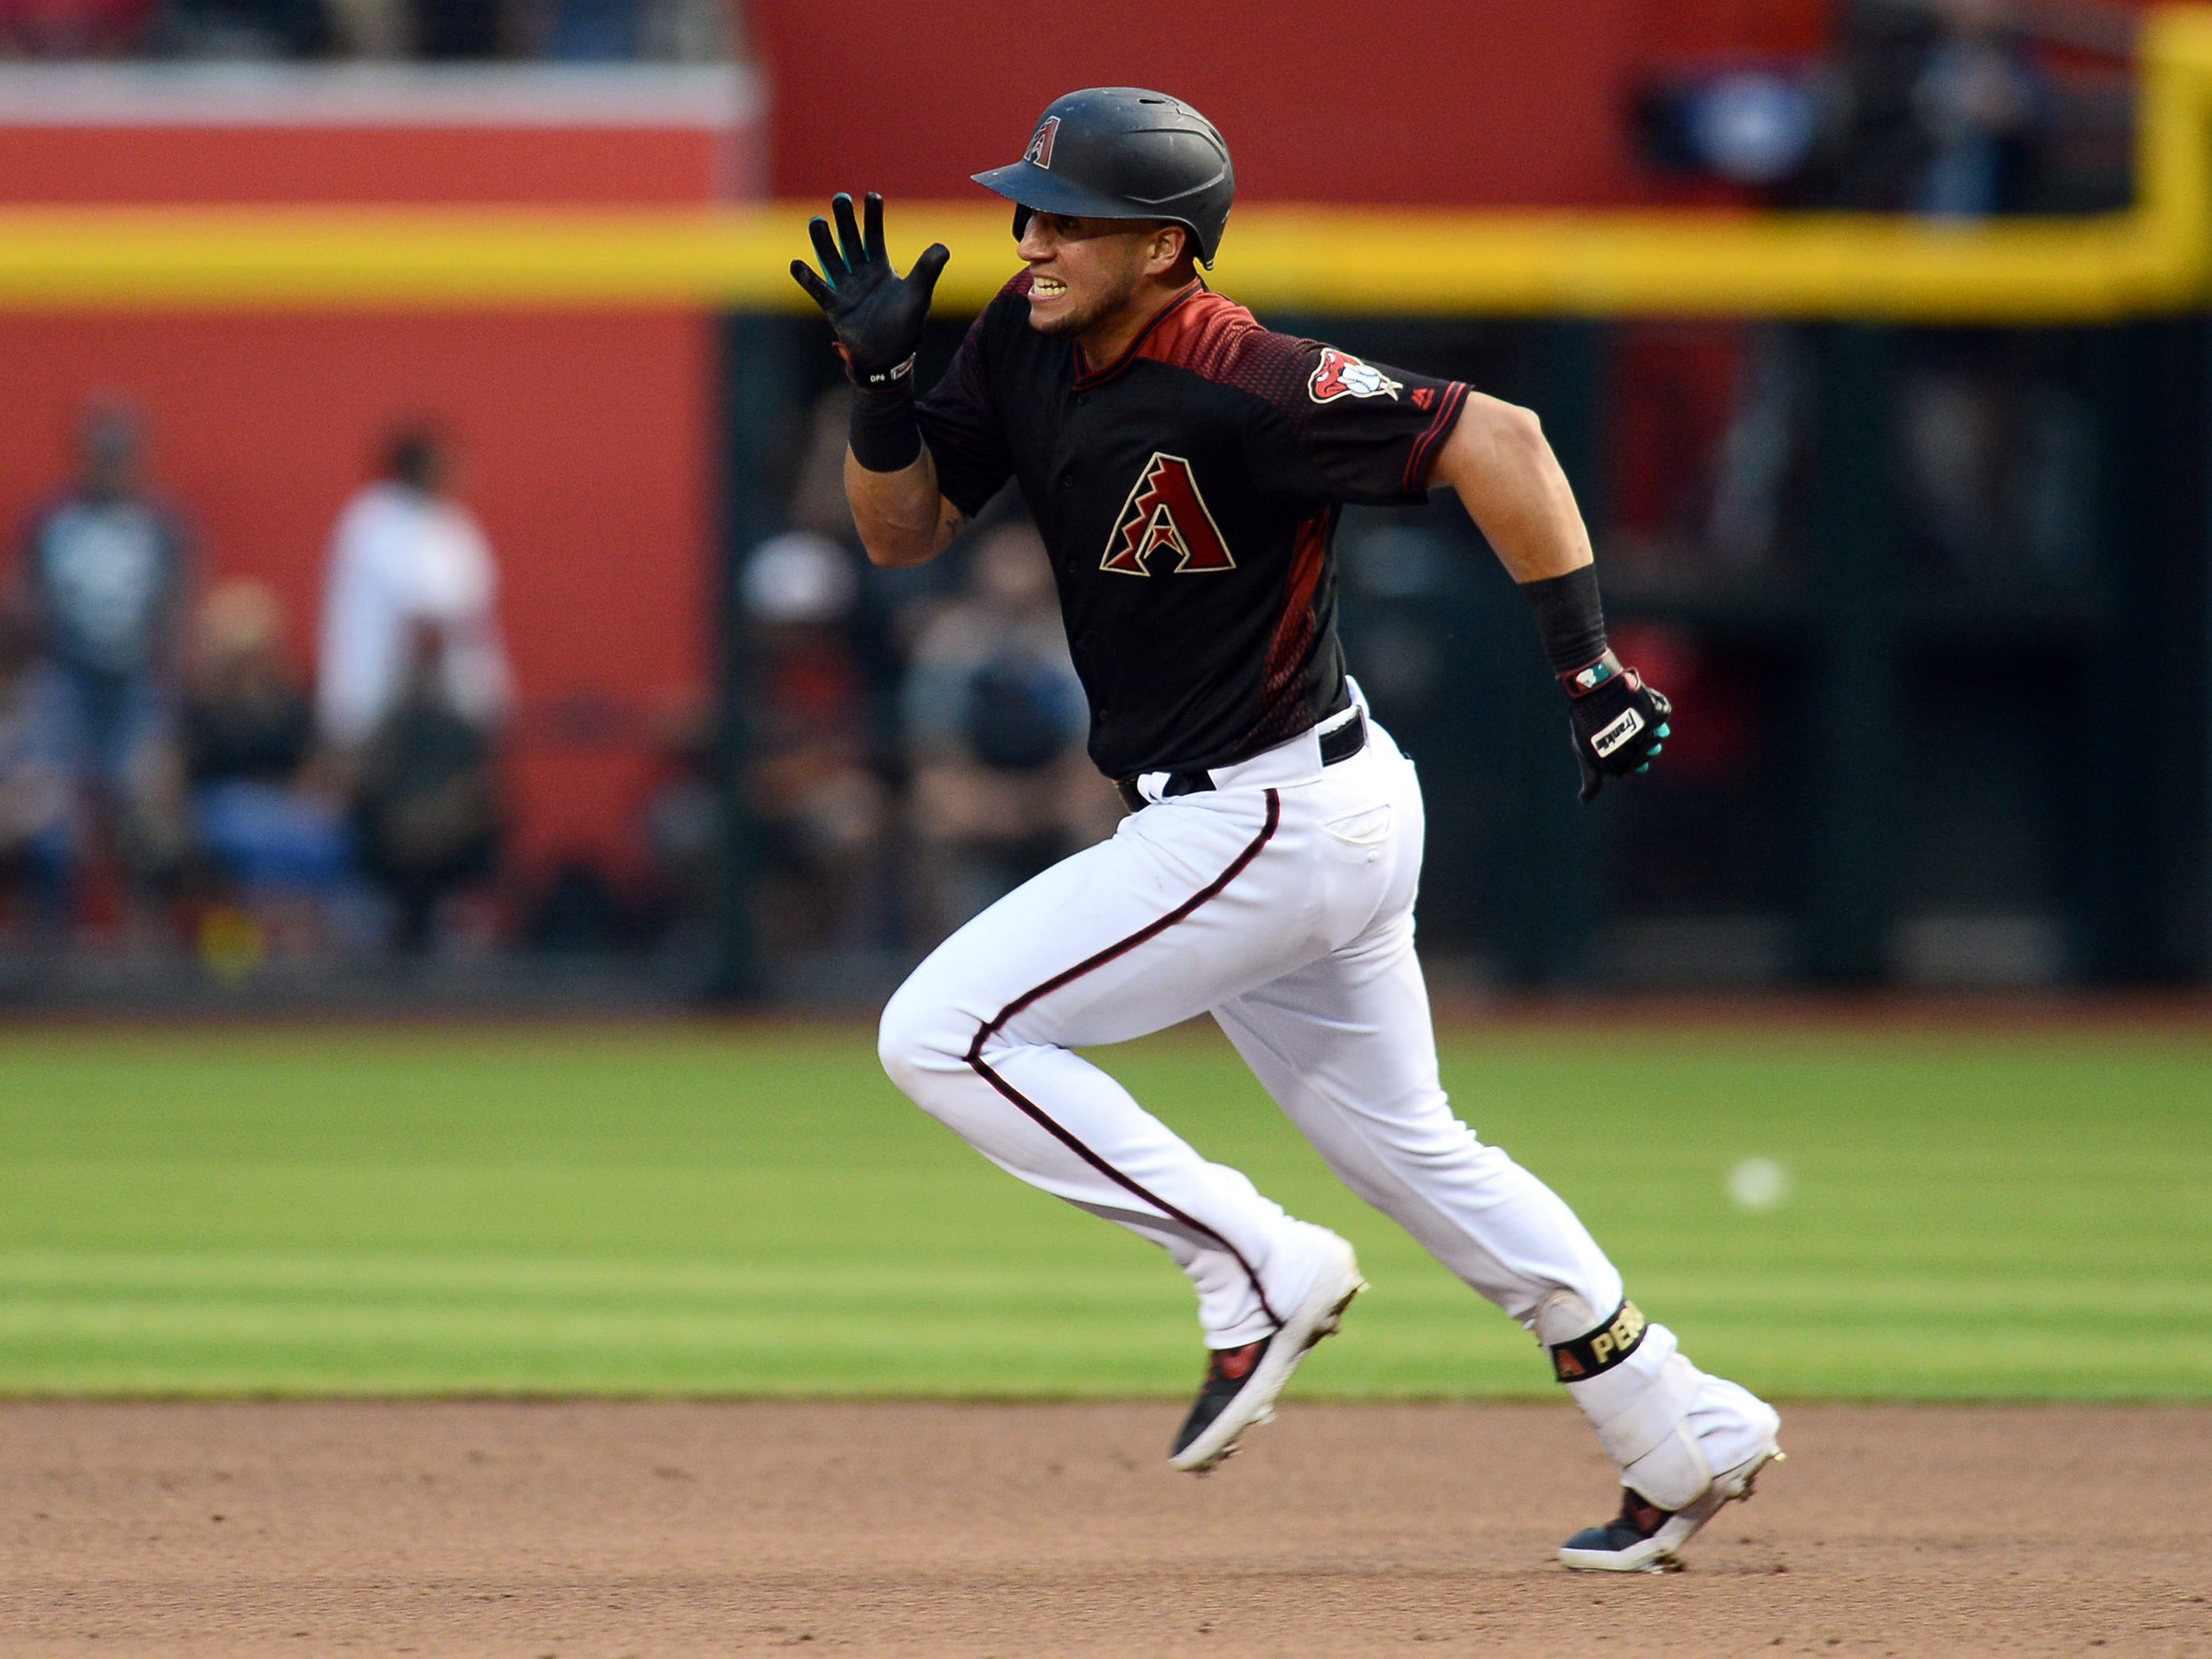 May 11, 2019; Phoenix, AZ, USA; Arizona Diamondbacks right fielder David Peralta (6) runs to second for a double against the Atlanta Braves during the sixth inning at Chase Field.